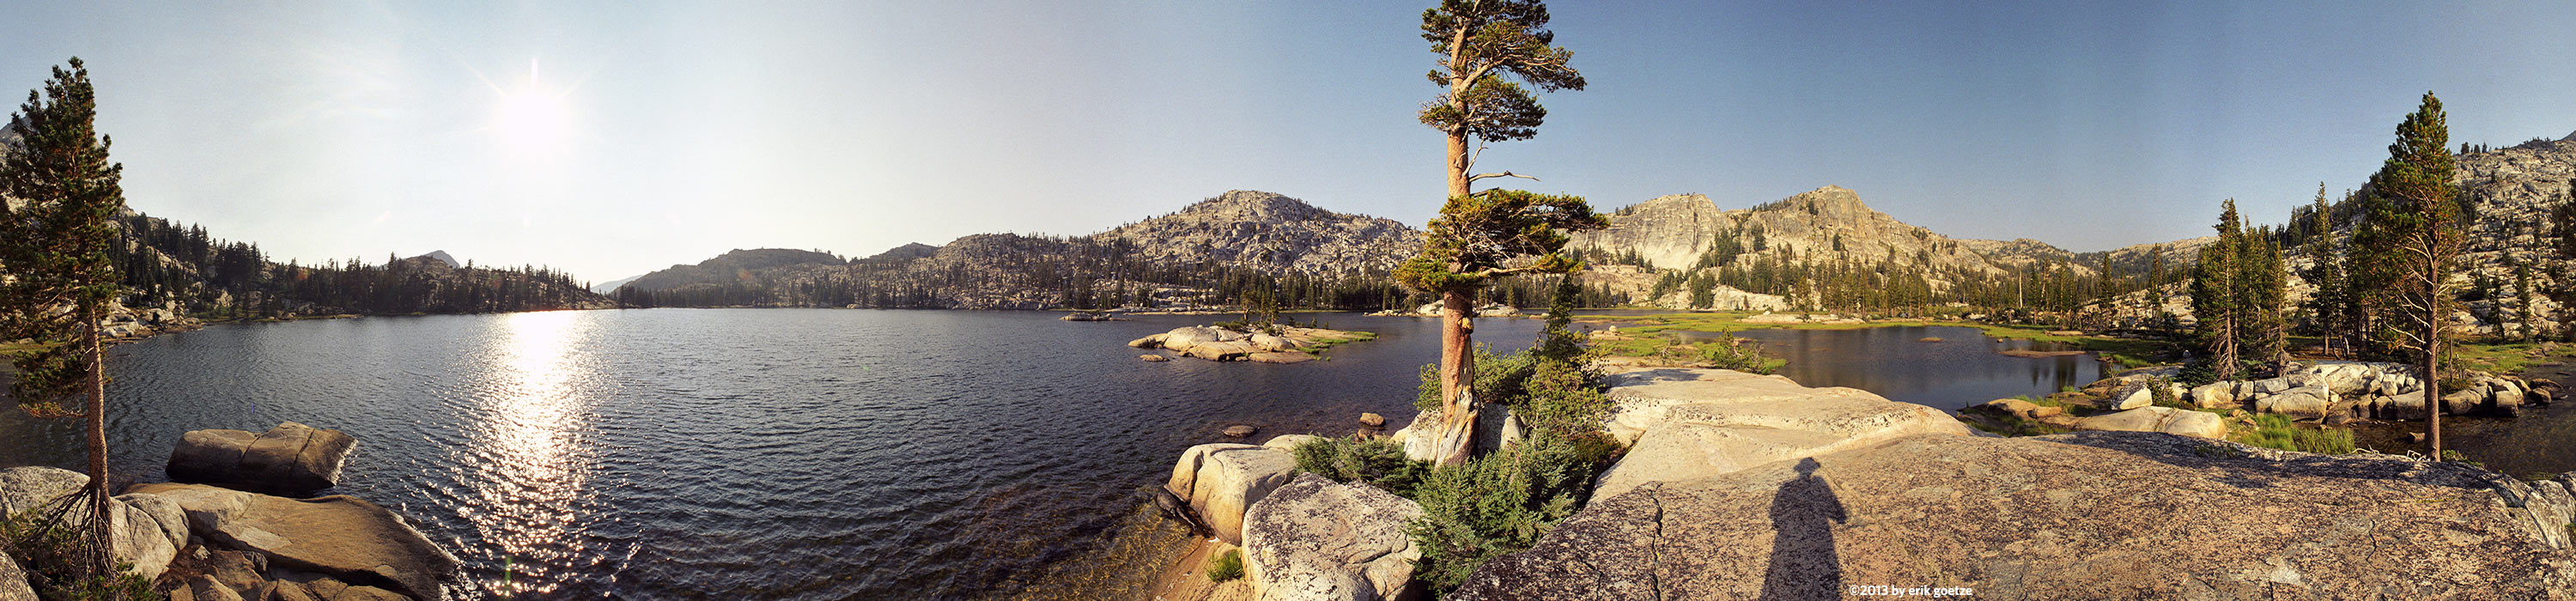 Lake Smedberg on the PCT, California